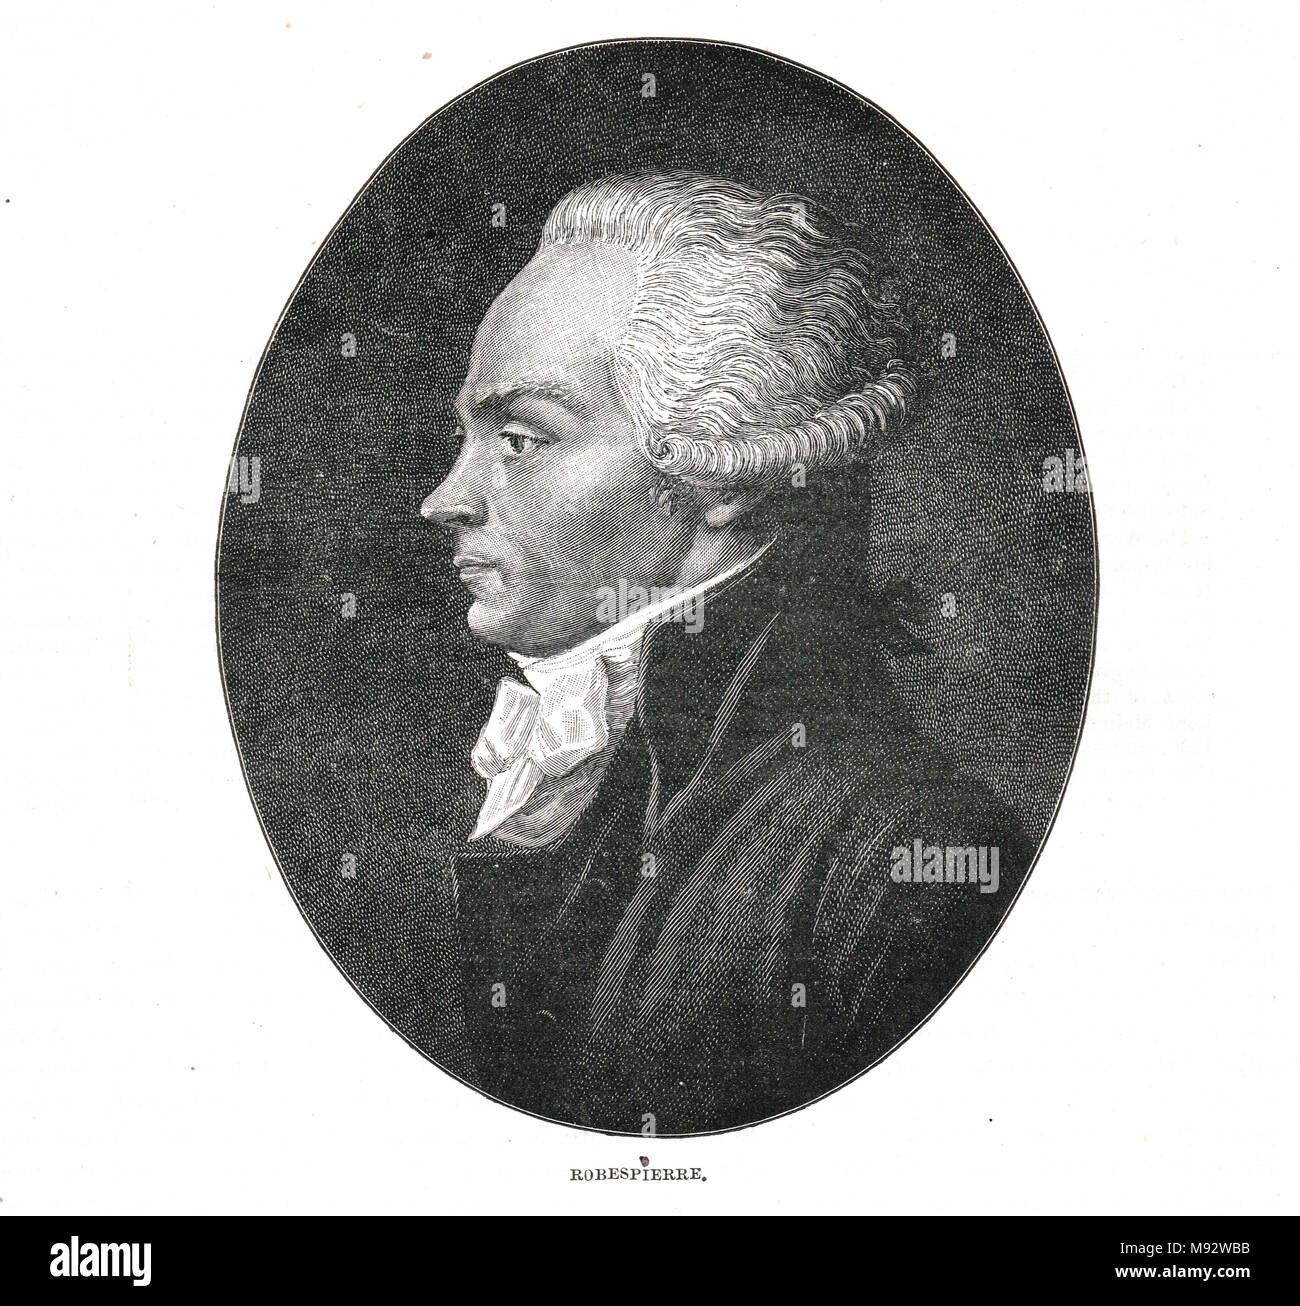 Robespierre, 1758–1794, French lawyer and politician, influential figure associated with the French Revolution, best known for his role in the Reign of Terror - Stock Image